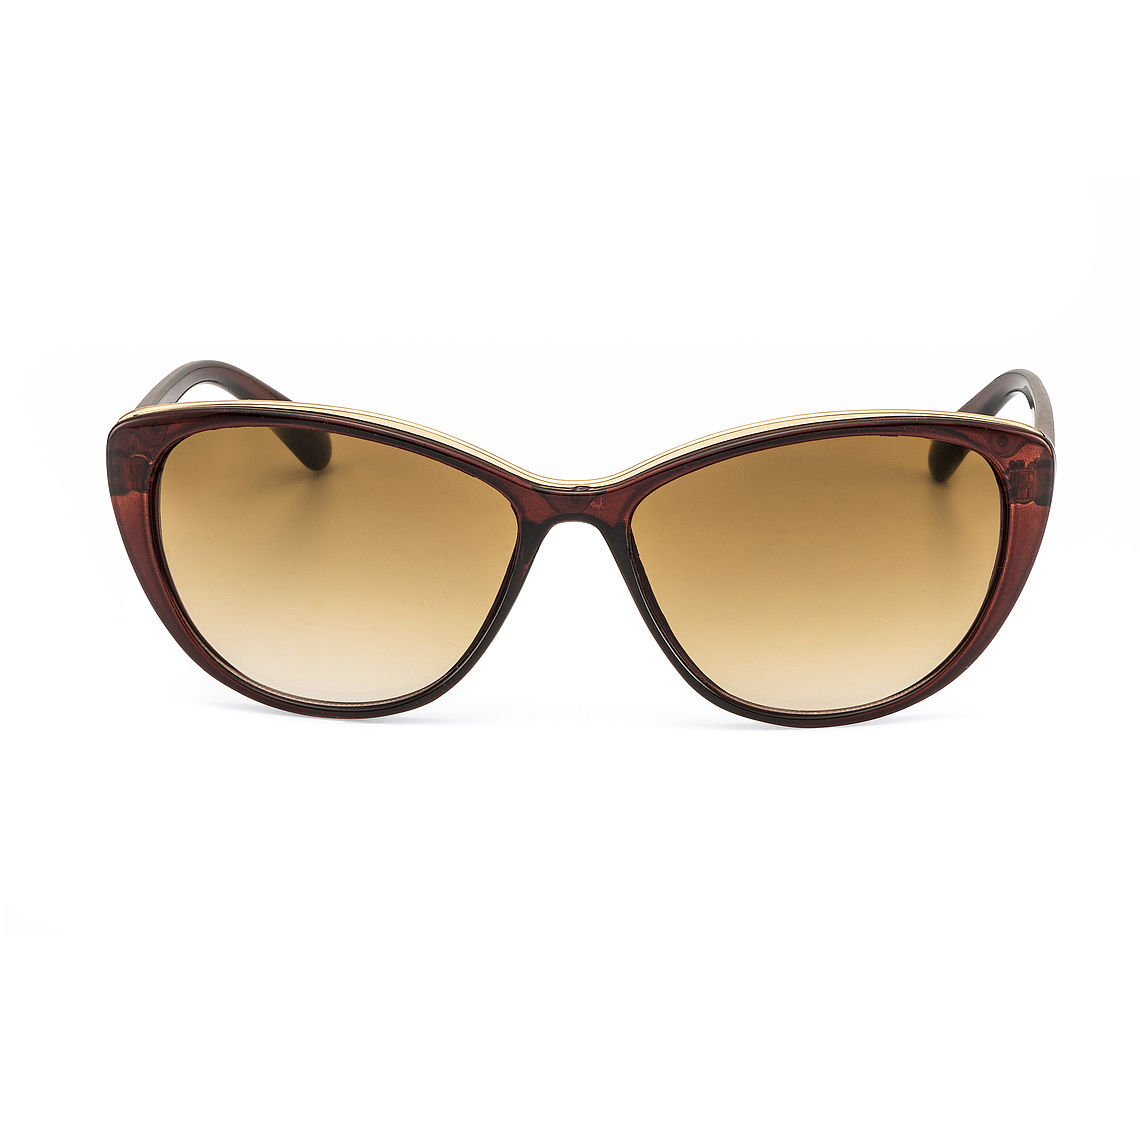 Front view, sunglasses 302070